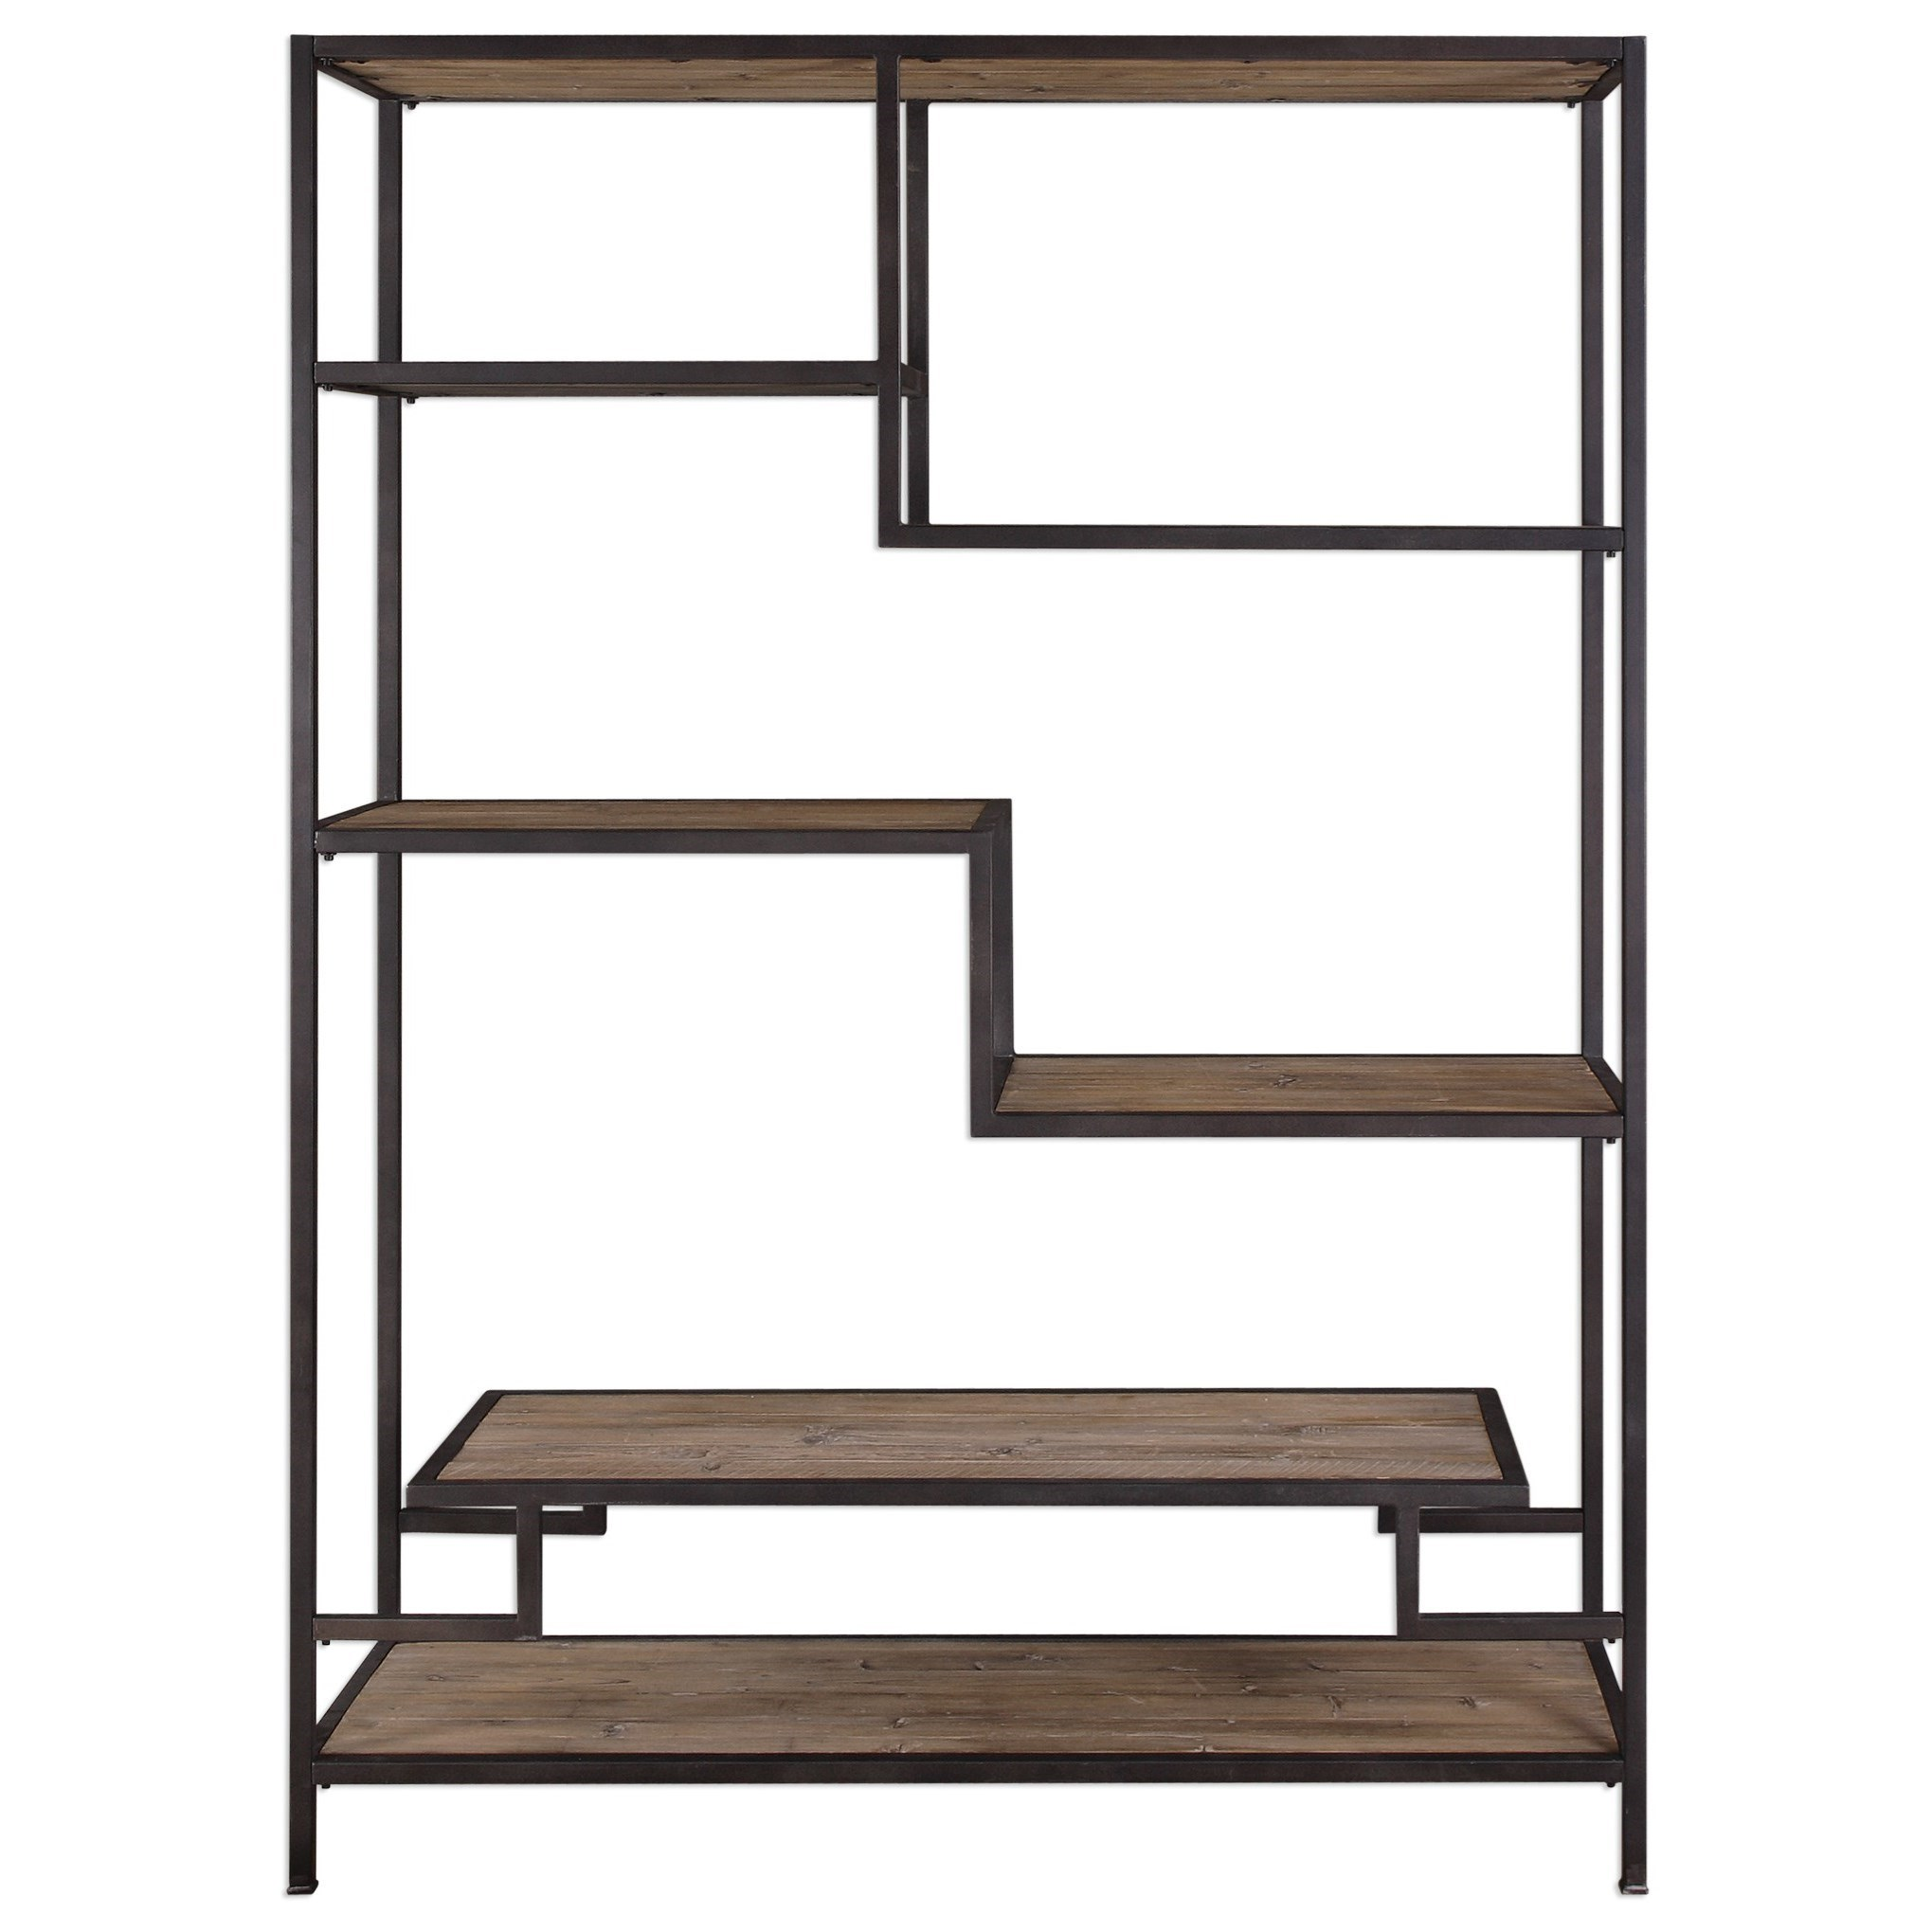 Uttermost Accent Furniture  Sherwin Industrial Etagere - Item Number: 24682